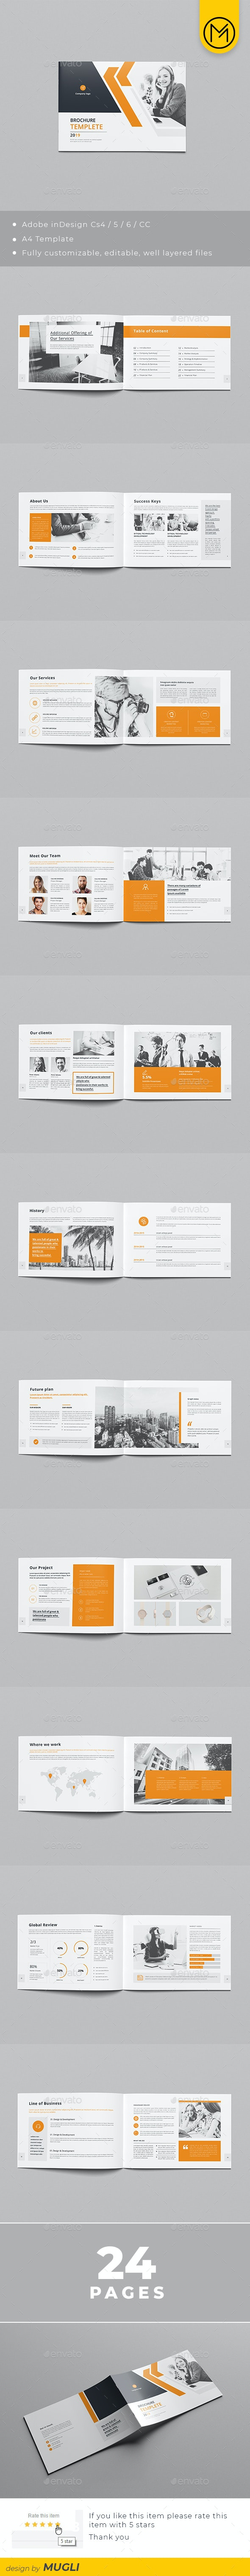 Horizontal Corporate Brochure - Corporate Brochures